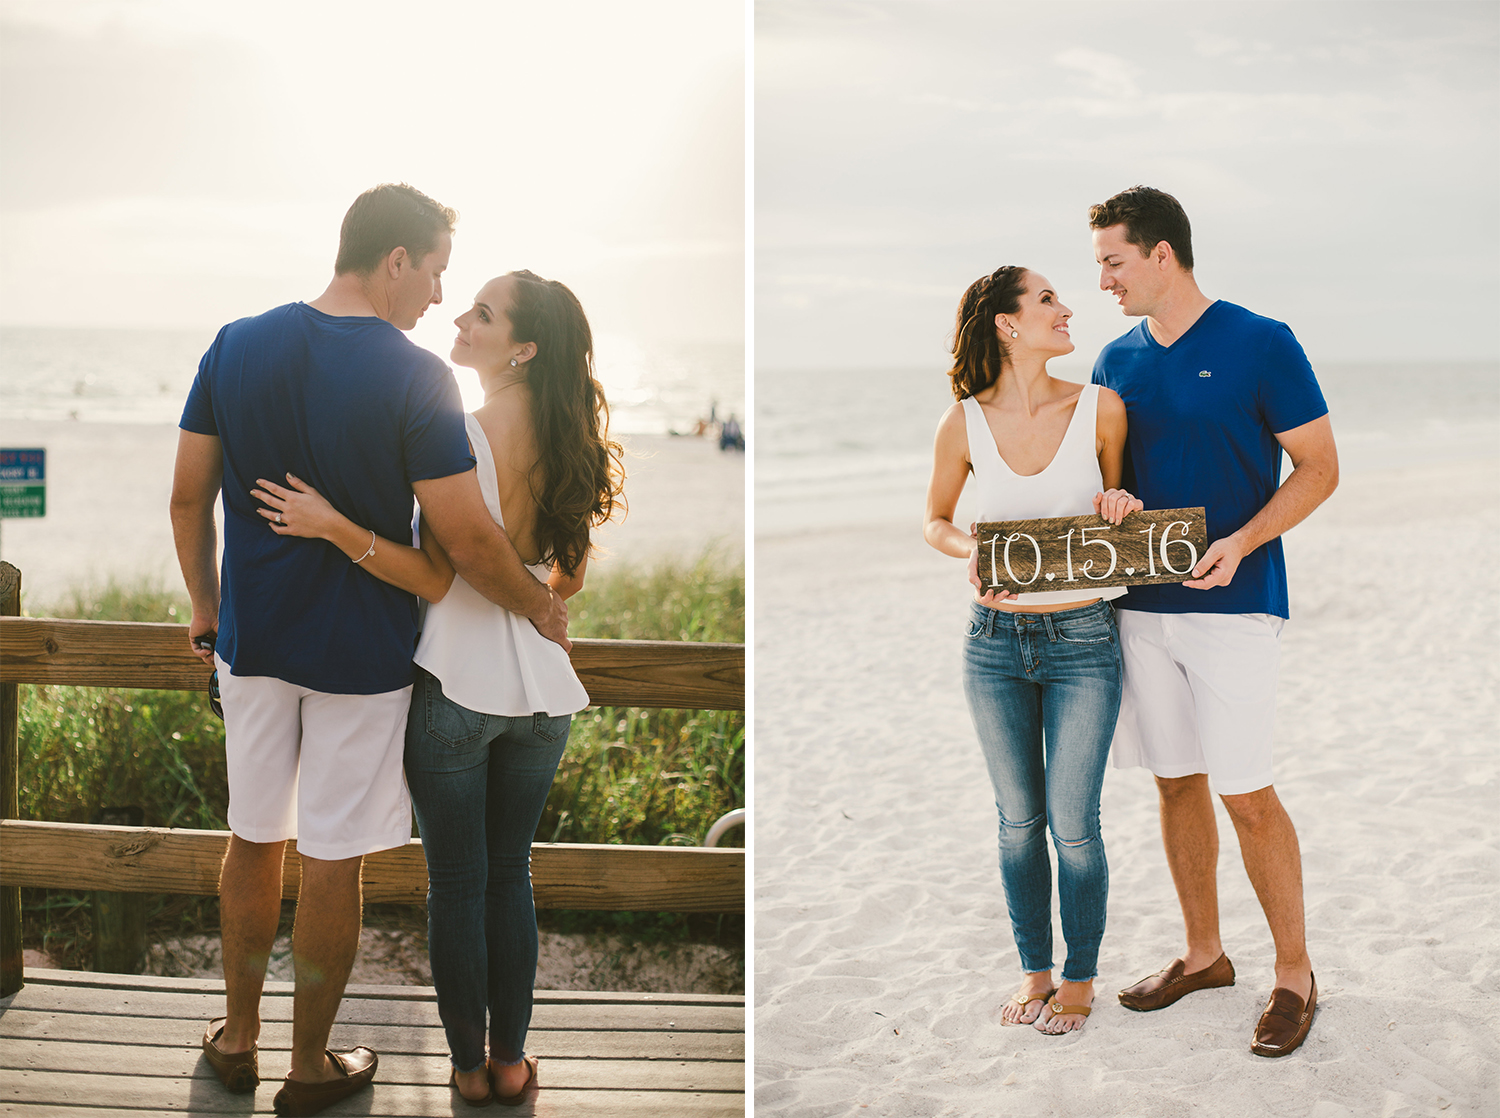 romantic engagement shoot on a beach in florida - wooden sign with wedding date